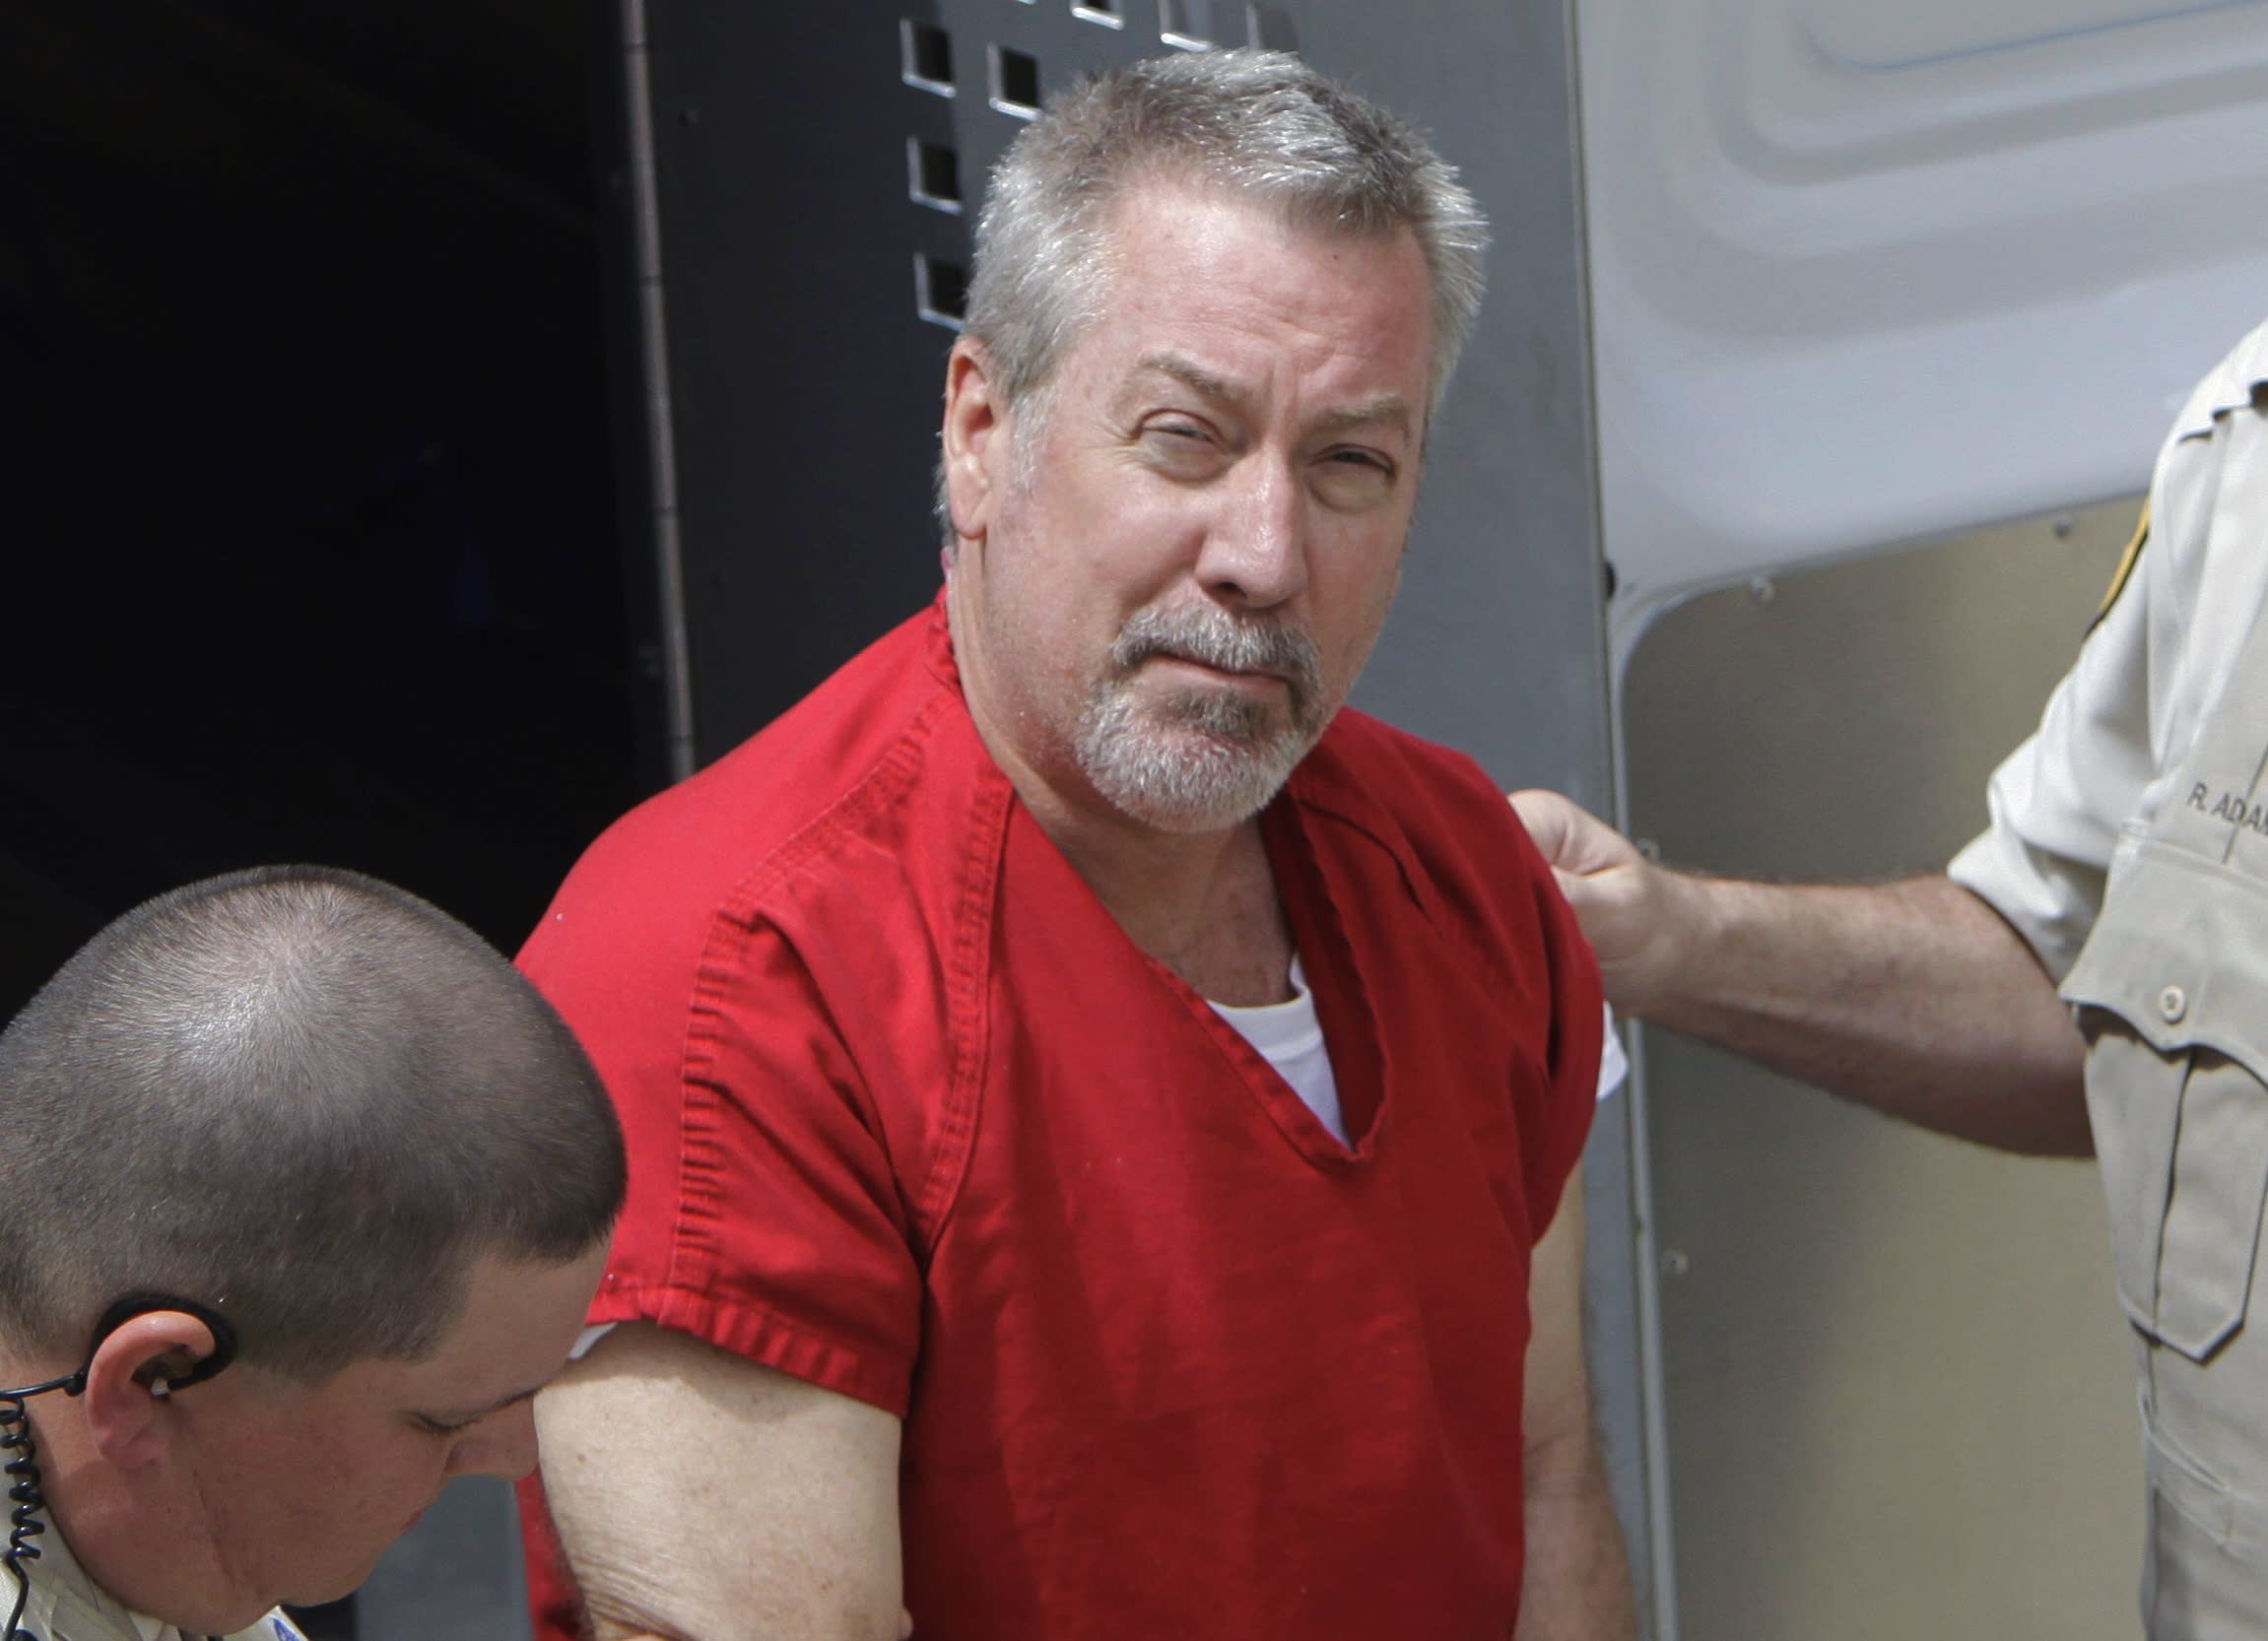 Drew Peterson pleads not guilty in murder-for-hire plot